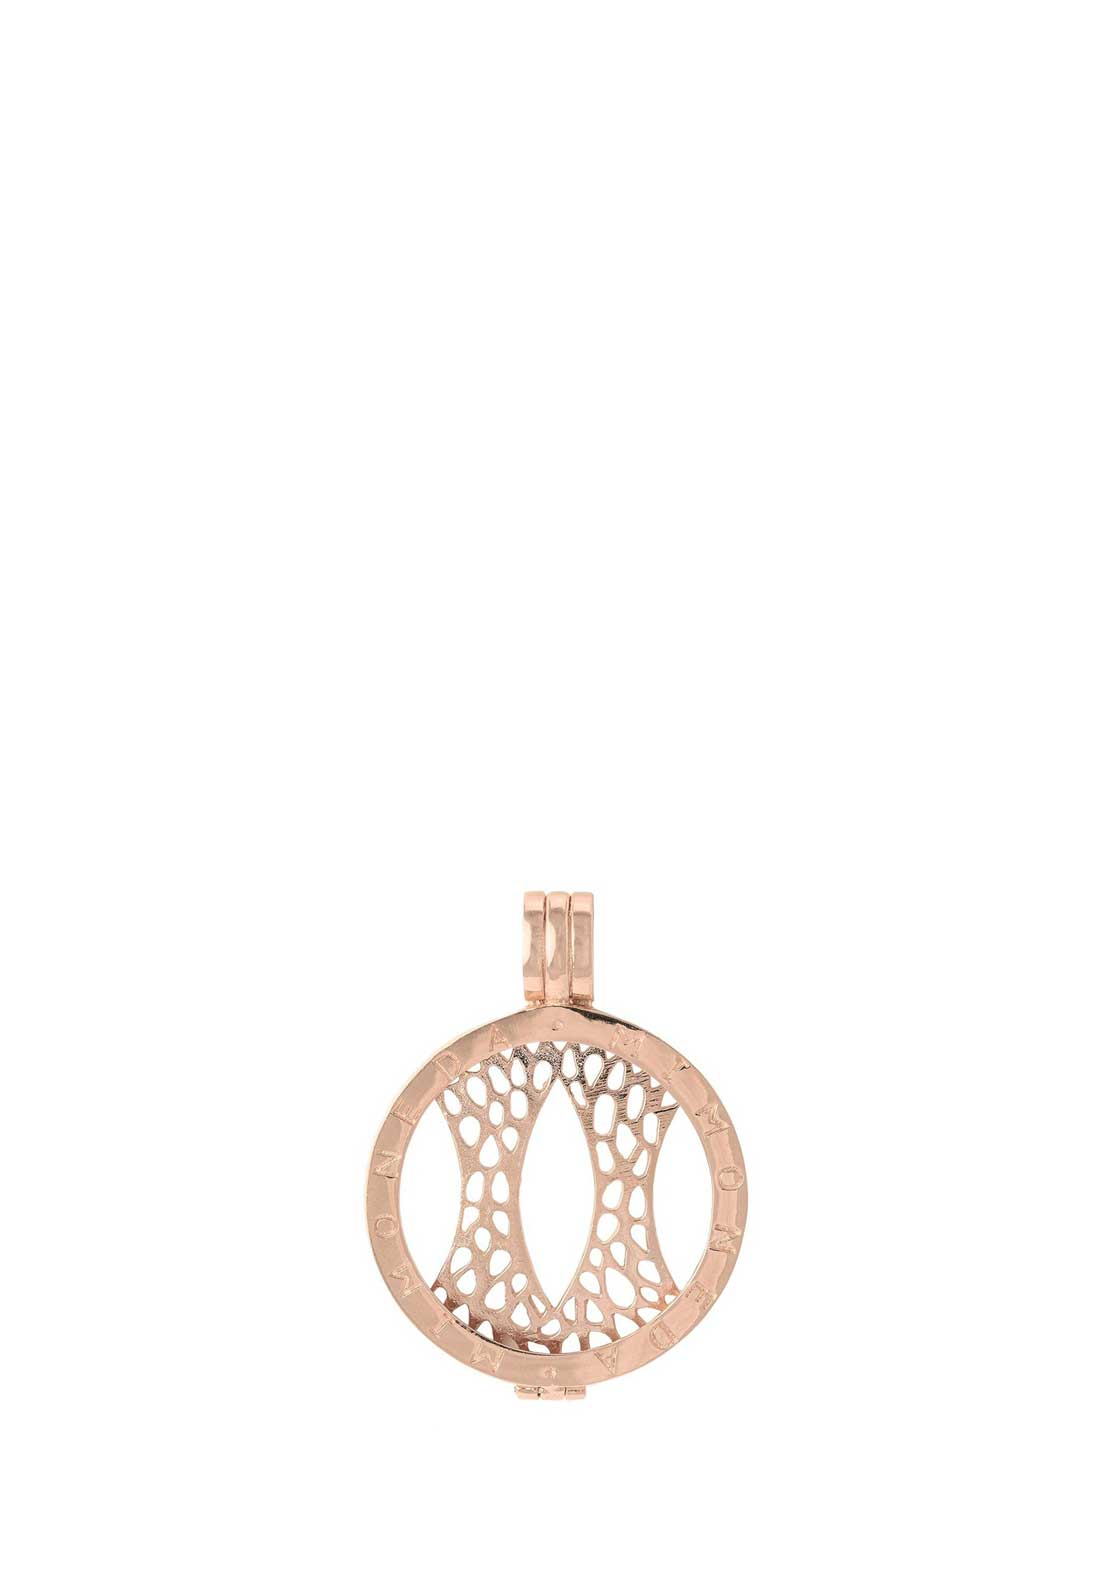 Mi Moneda Small Coin Pendant Holder, Rose Gold